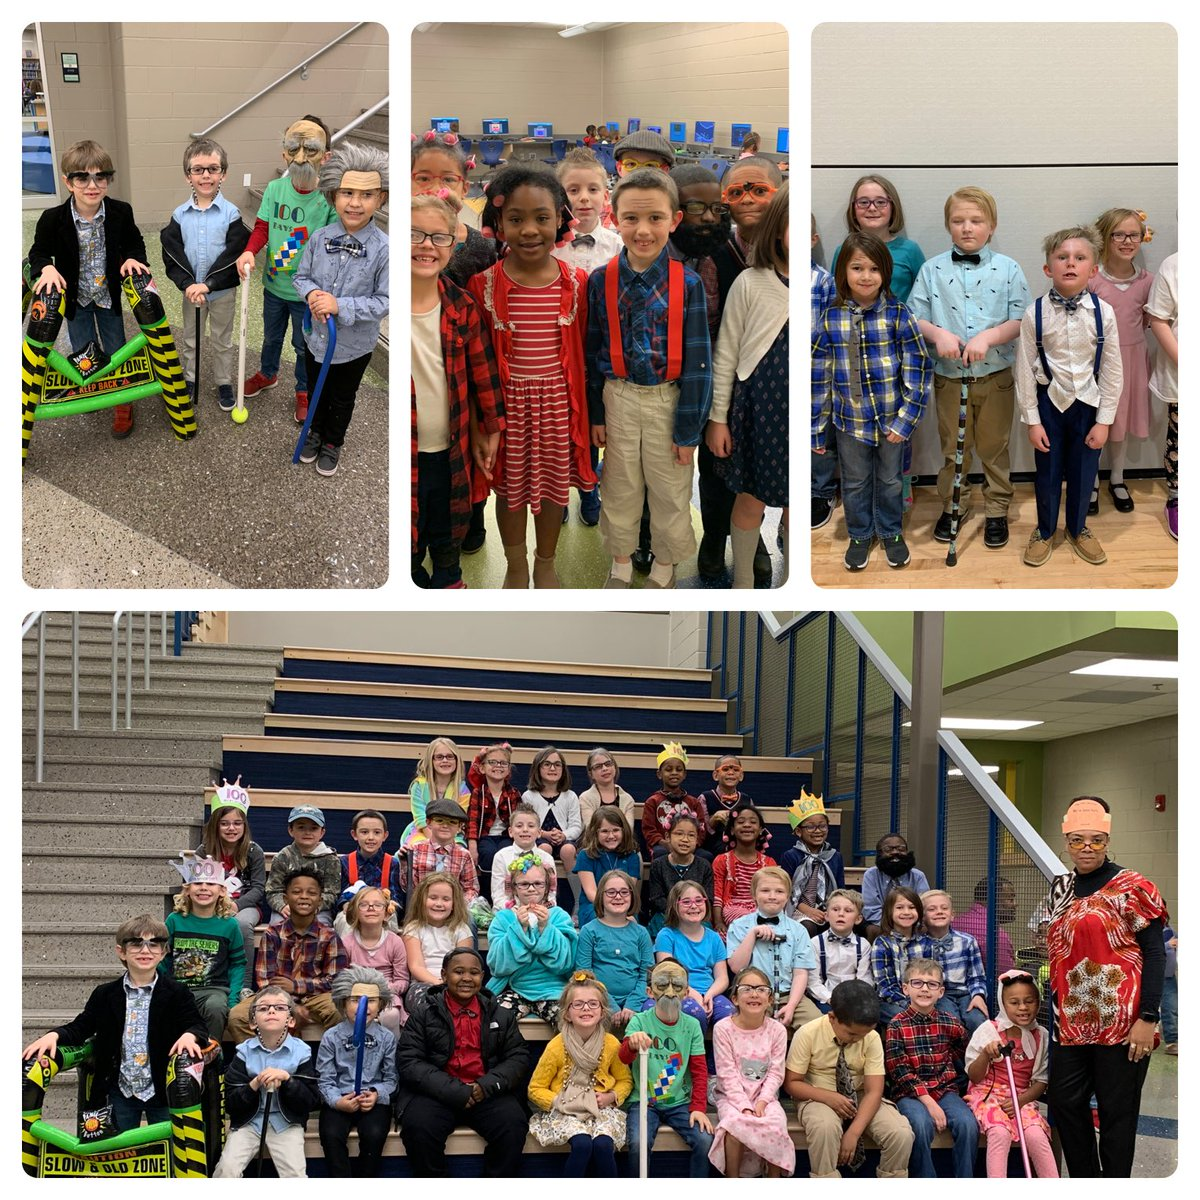 Celebrating 100 days of school @EaglesFbes The students and staff did an amazing job! #Spsk12proud